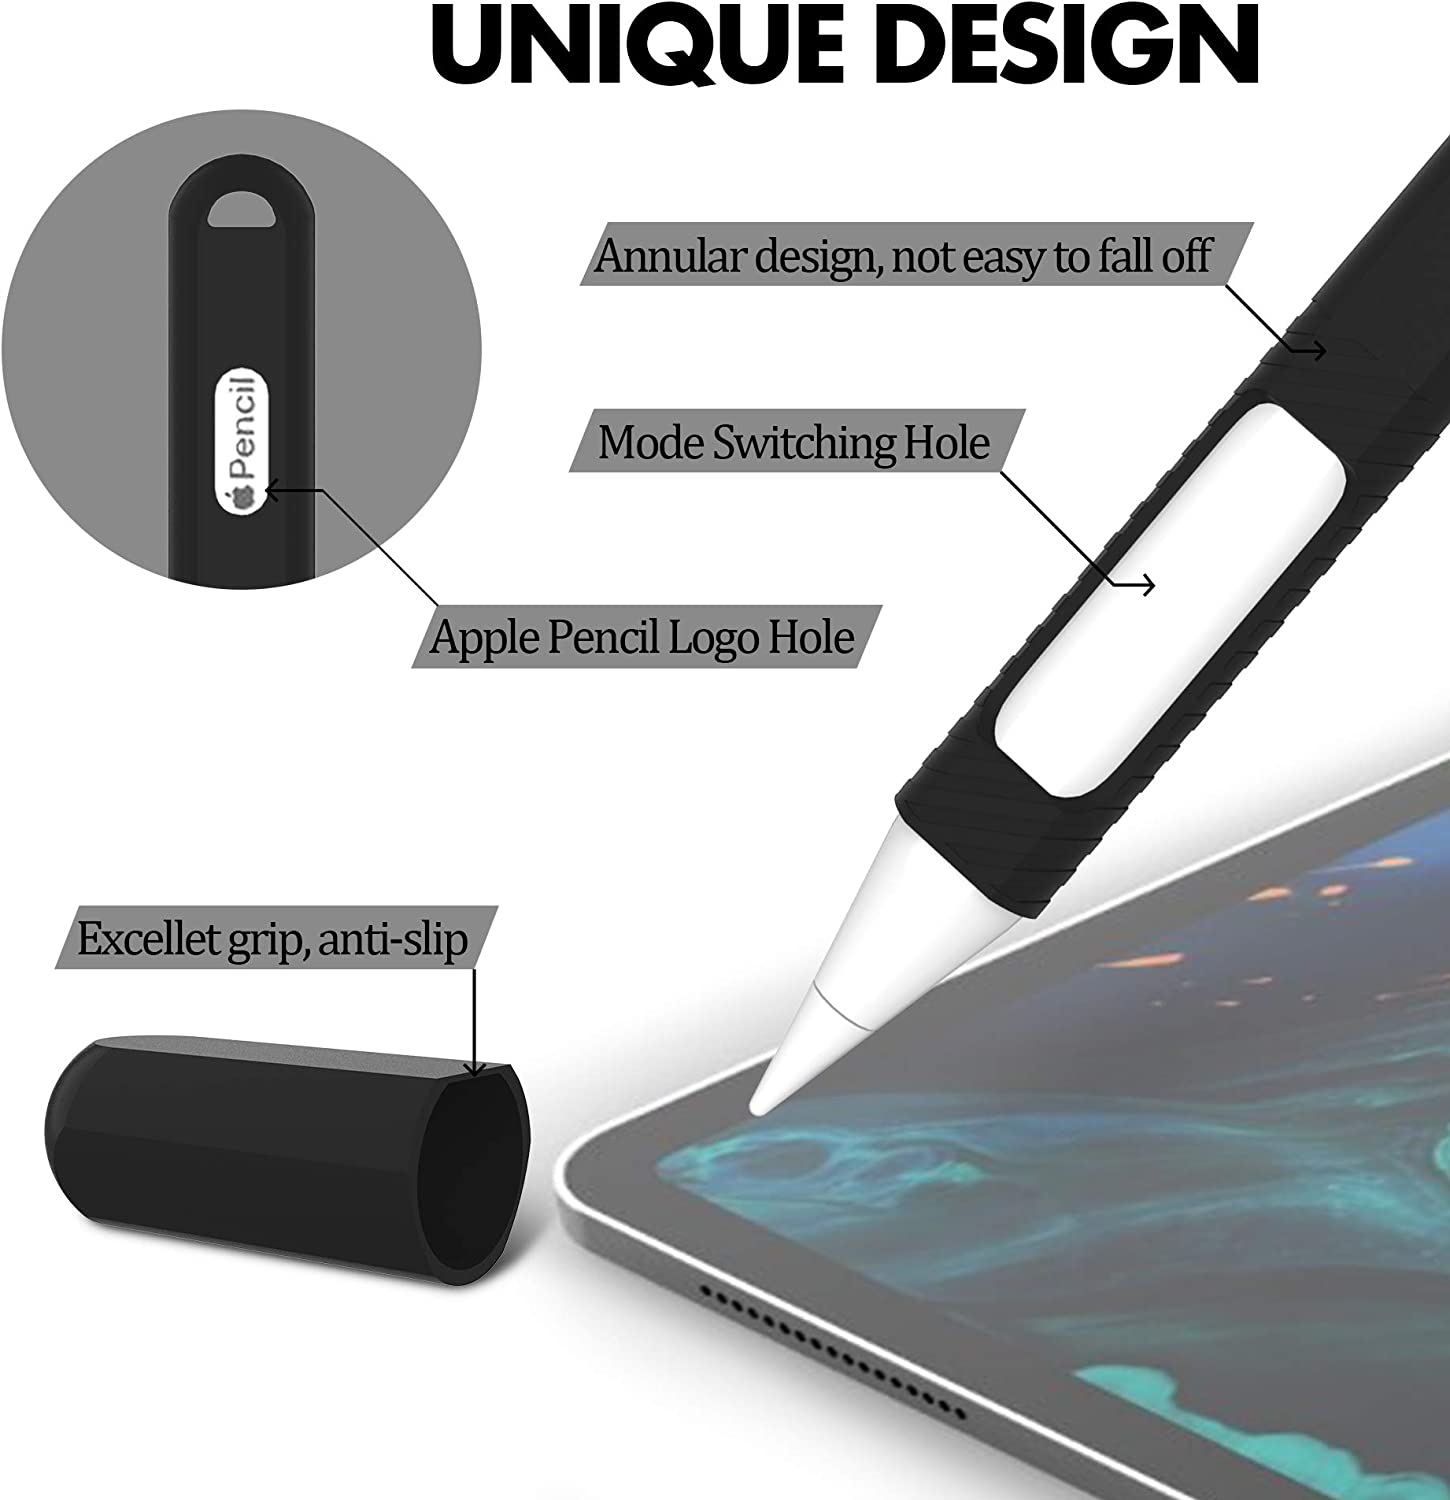 Ultra-Thin Anti-Slip Protective Silicone Pencil Holder Sleeve for Apple Pencil 2nd Generation BELKA Apple Pencil 2nd Generation Case for iPad Pro 12.9 2018 /& iPad Pro 11 2018 Black